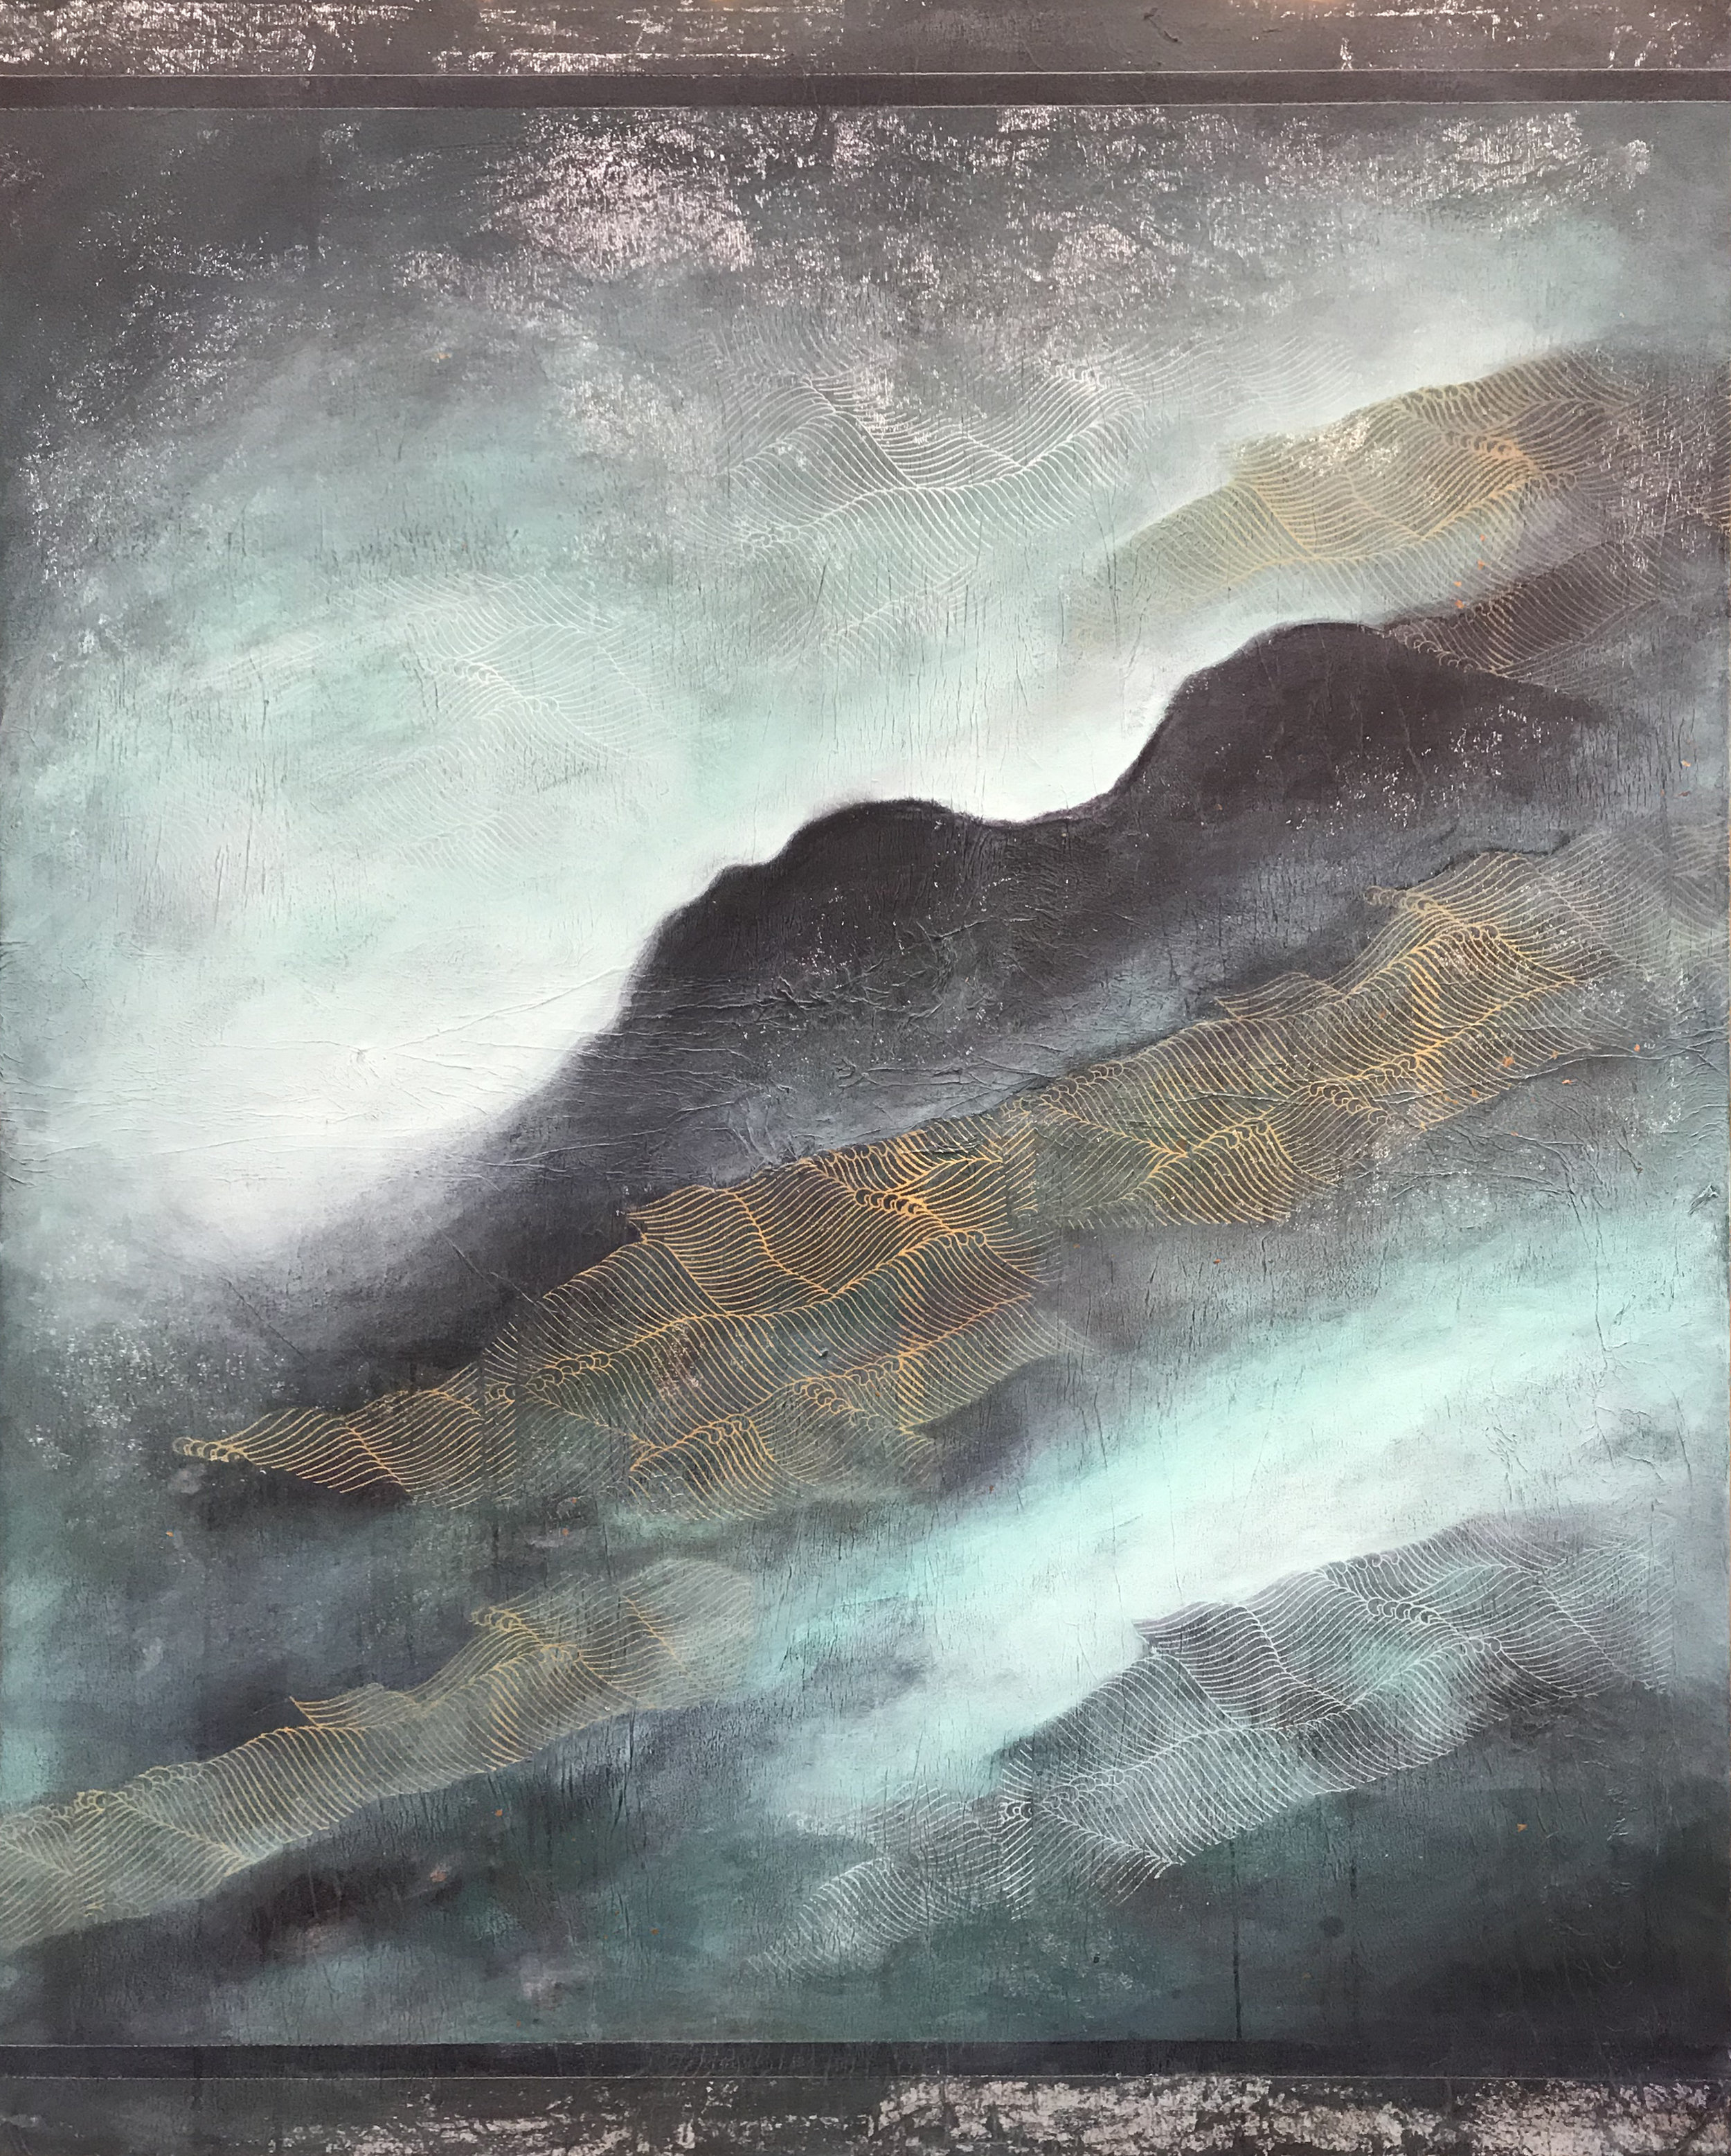 """Letting Go"" - This painting represents a falling, a descent, a 'letting go'. A natural journey downwards, flowing like the current in a river, over the rocks and pebbles, following the simplest route back to its source. This work is also a metaphor for human experience. To quiet the mind, soften mental identification with the external world and release from the fear and need to control one's 'life'. To let go and to trust the direction of the natural current of life. To turn the gaze inward to connect with the infinite source of stillness within."